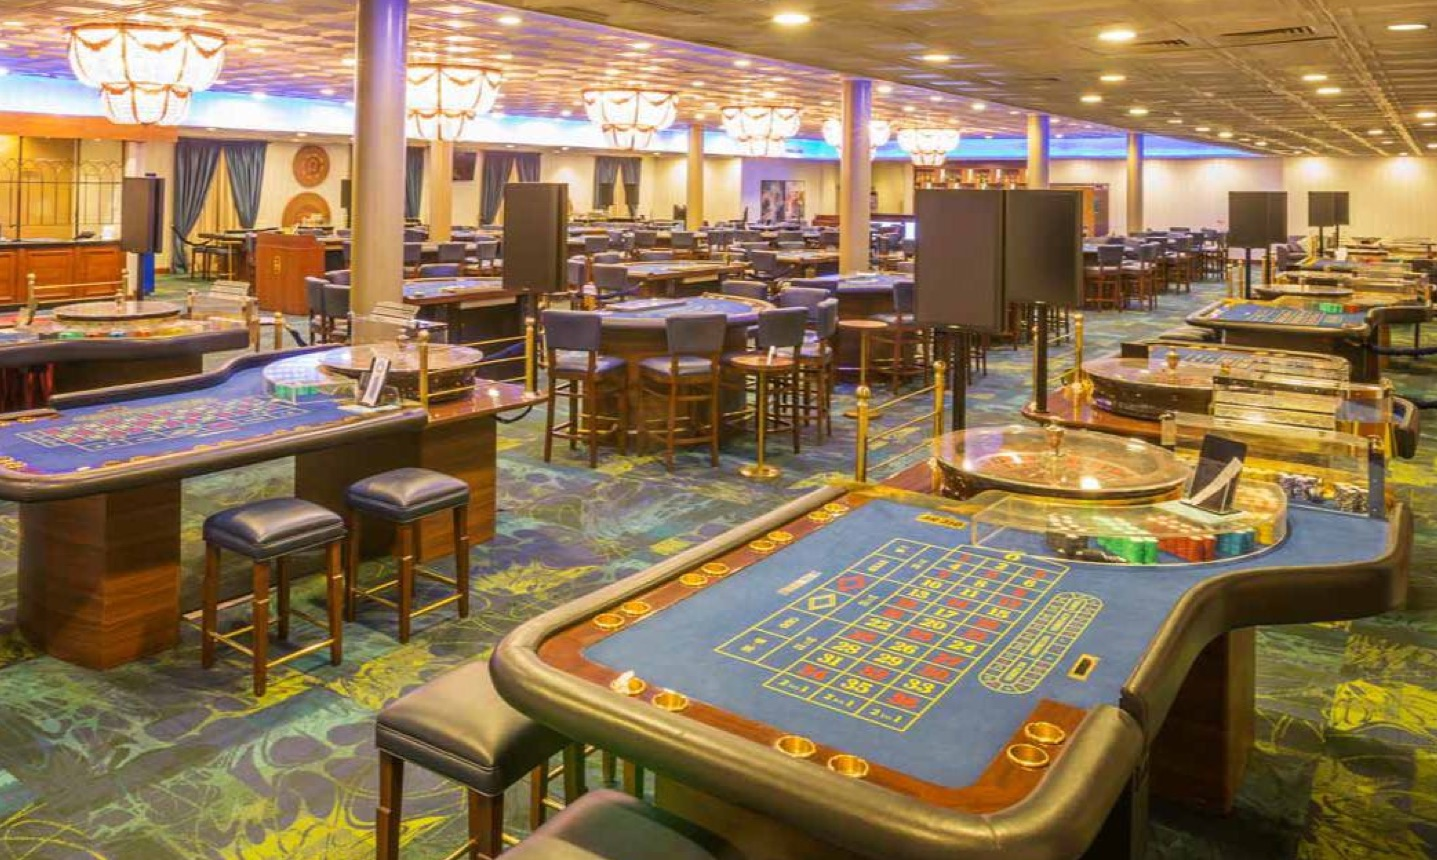 Goa's political leaders disagree on casino visits by locals